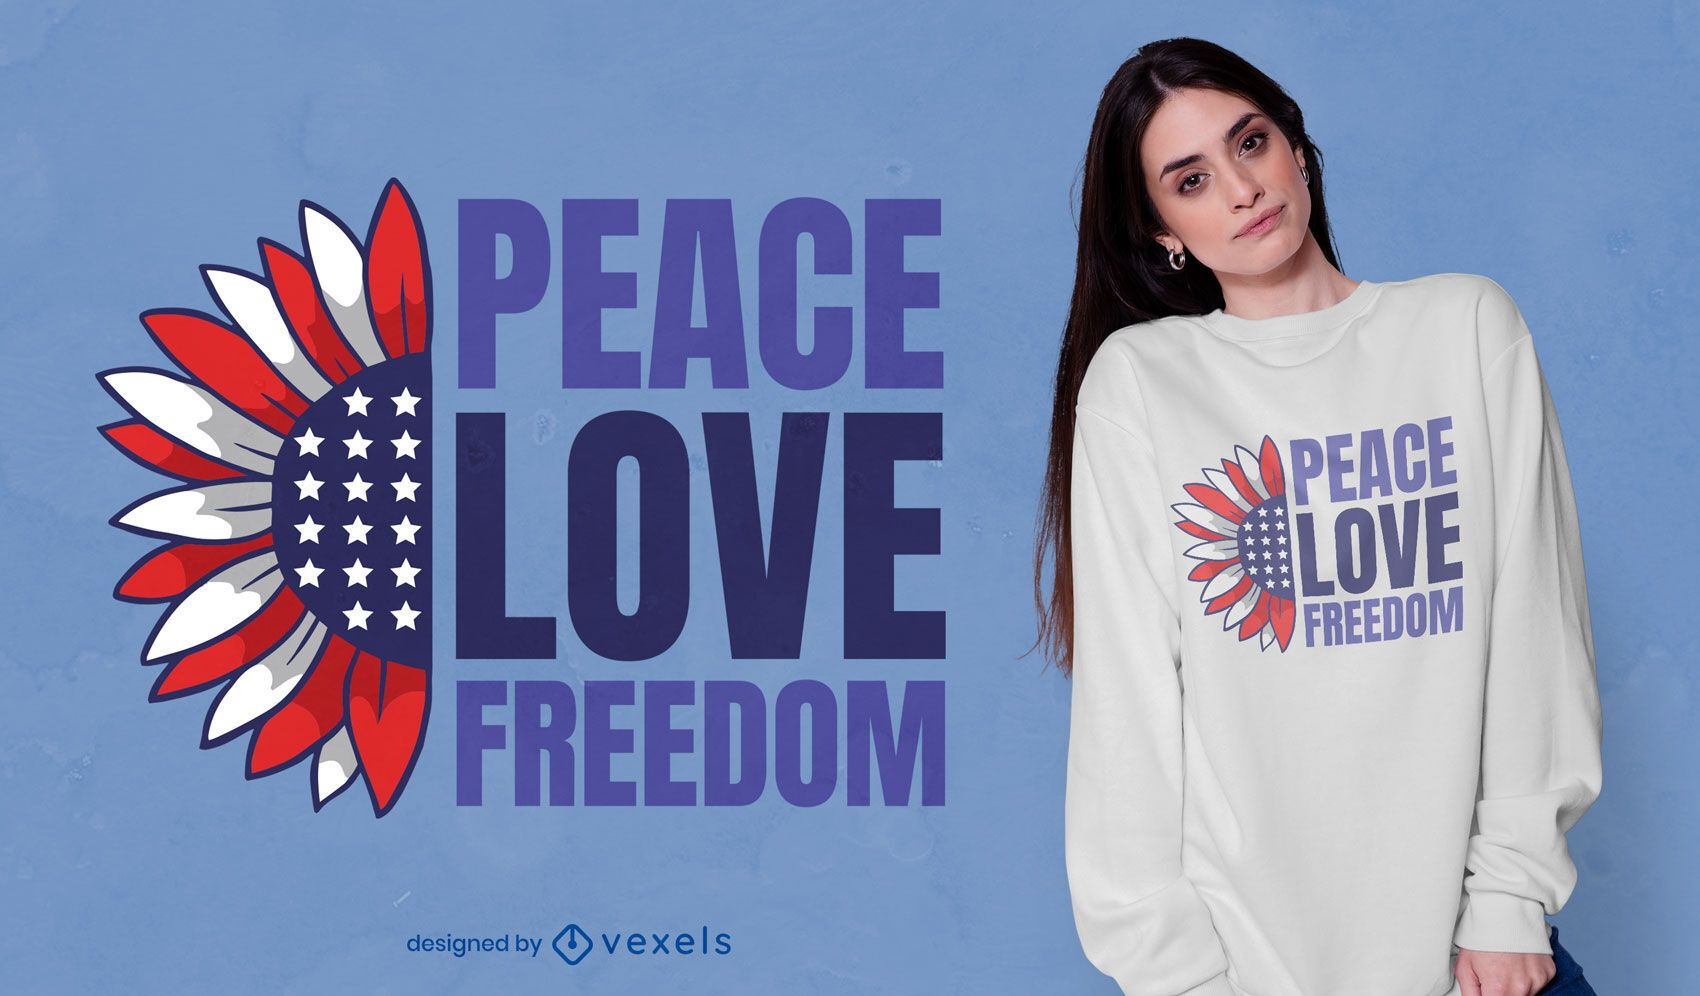 United states freedom quote t-shirt design